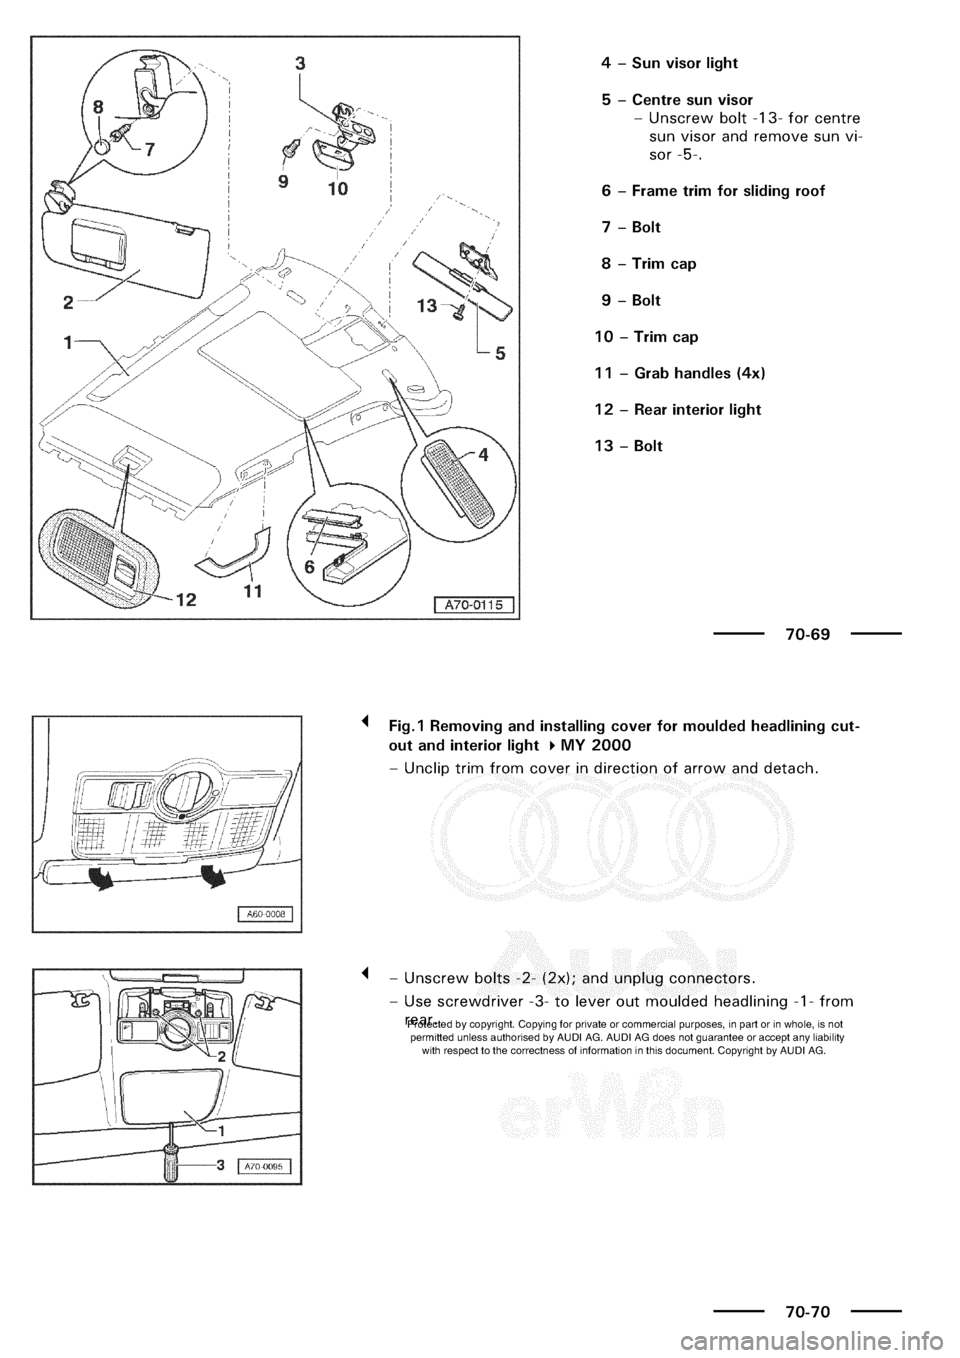 AUDI A3 1999 8L / 1.G General Body Assembly Interior Workshop Manual